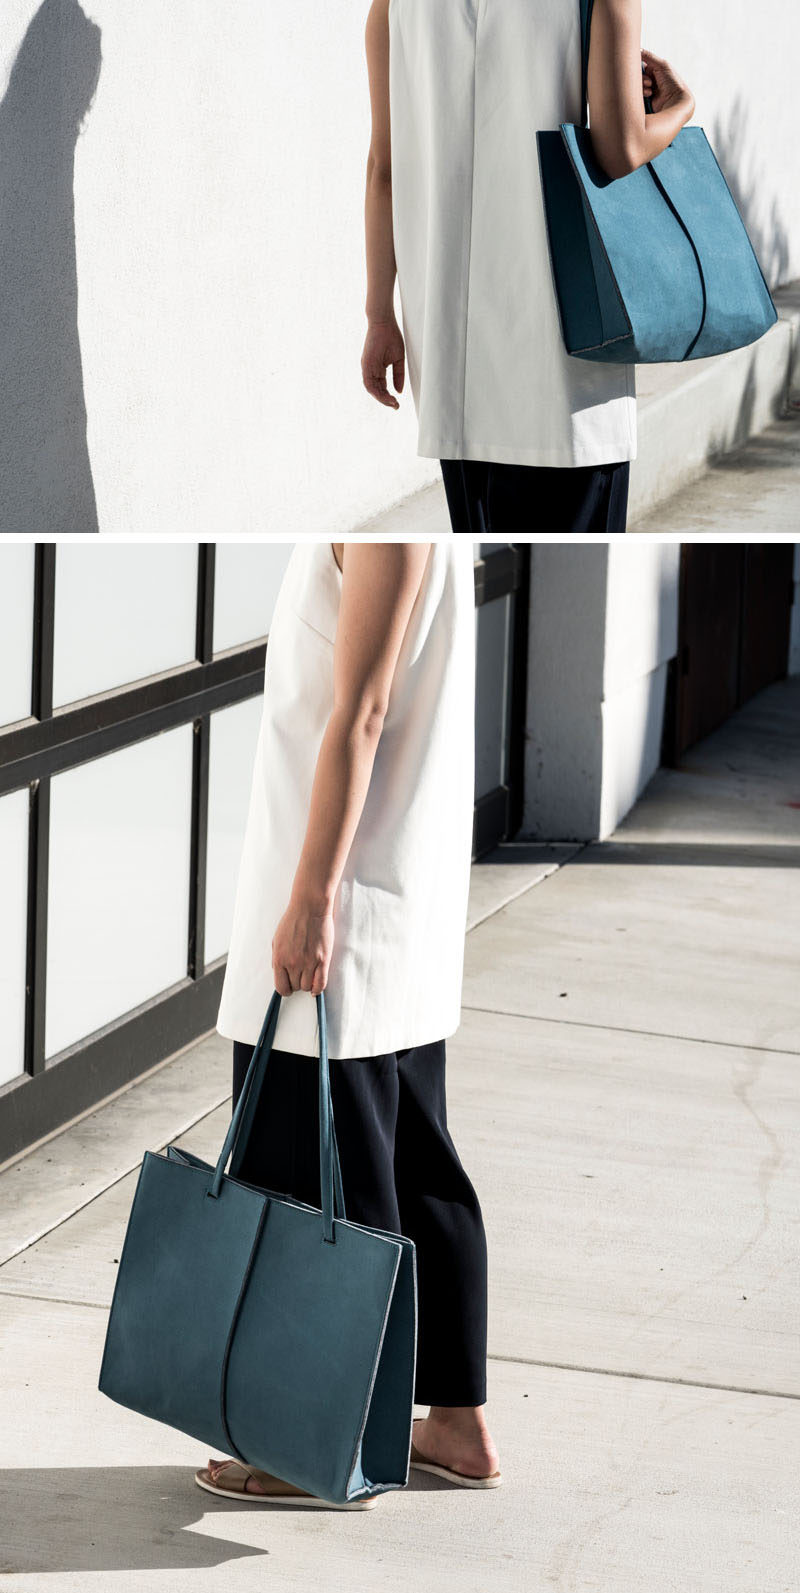 Women's Fashion Ideas - The M.R.K.T.'s Spring 2017 Collection Featuring Minimalist Totes // This lightweight tote is the perfect everyday carry-all bag. The long shoulder straps make it easy to throw over your shoulder and the hardworking material allows it to keep its shape.